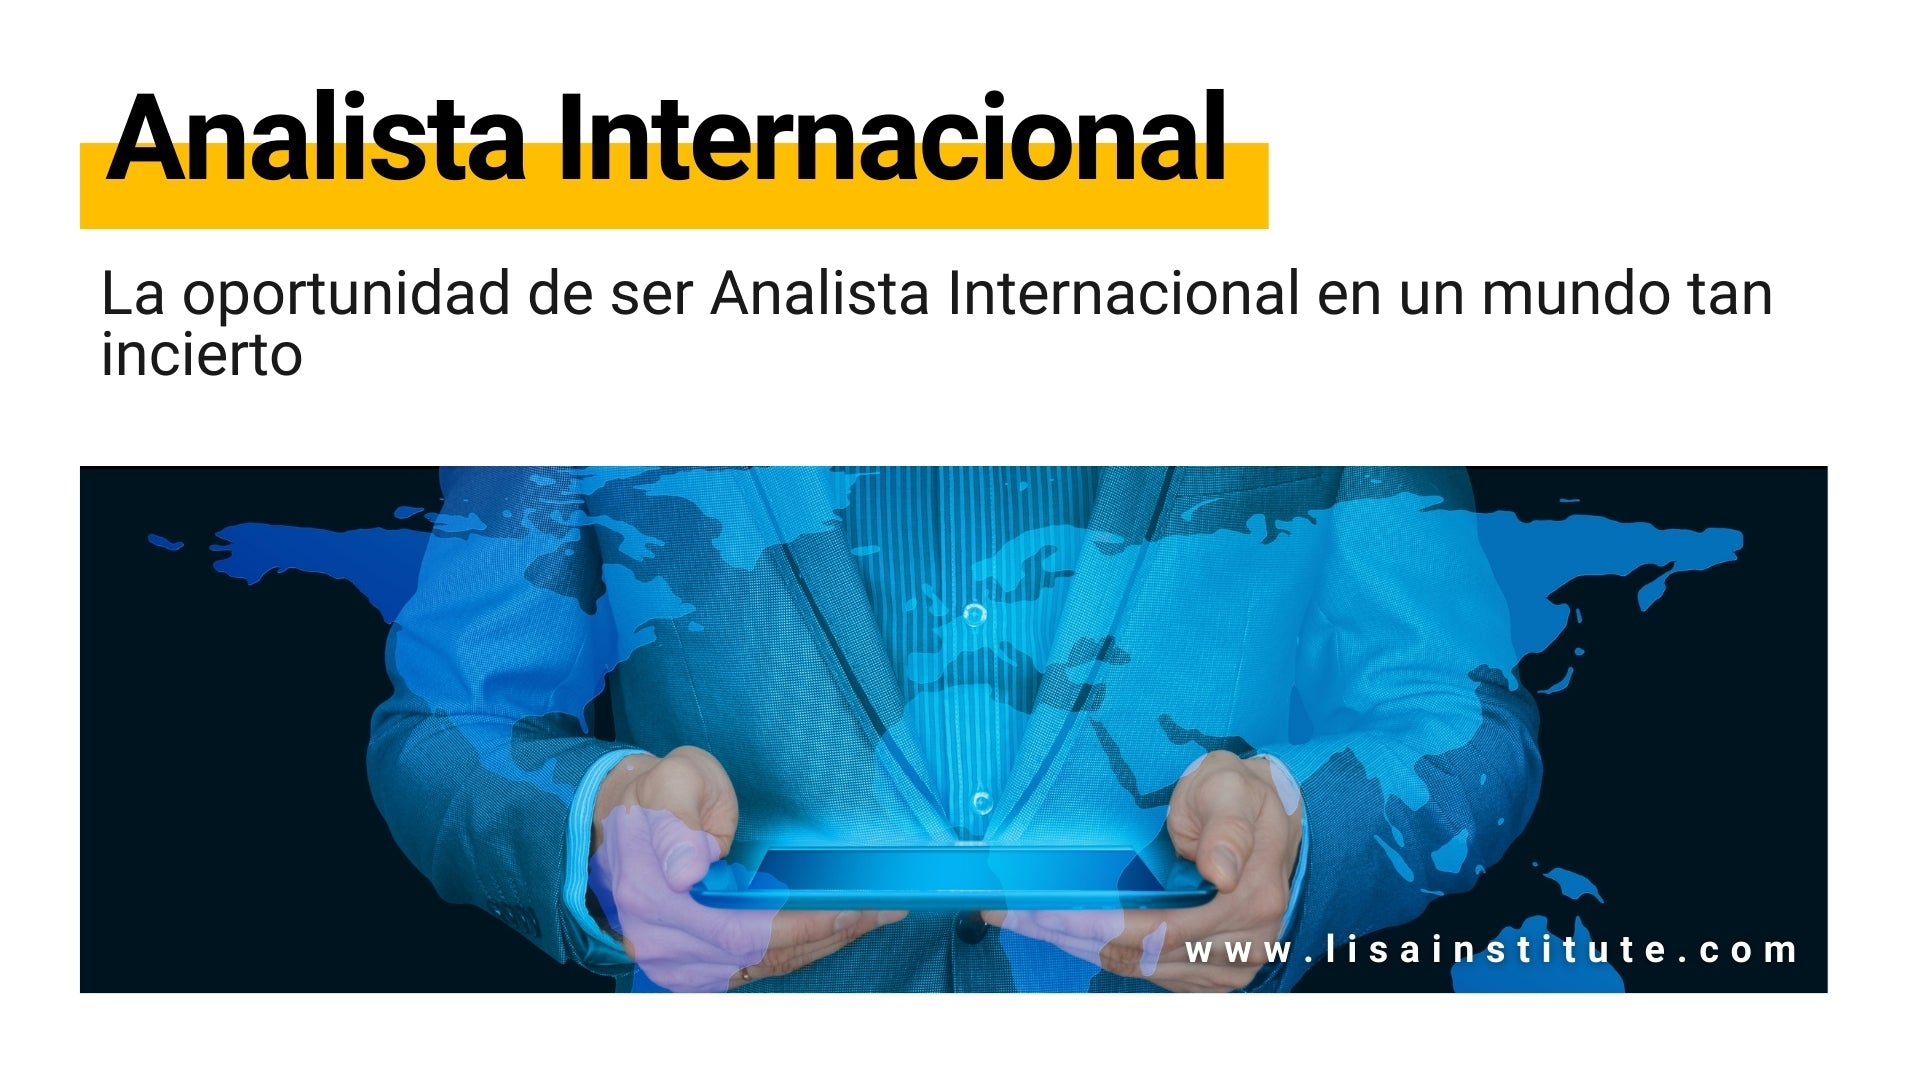 La oportunidad de ser Analista Internacional en un mundo tan incierto - LISA Institute